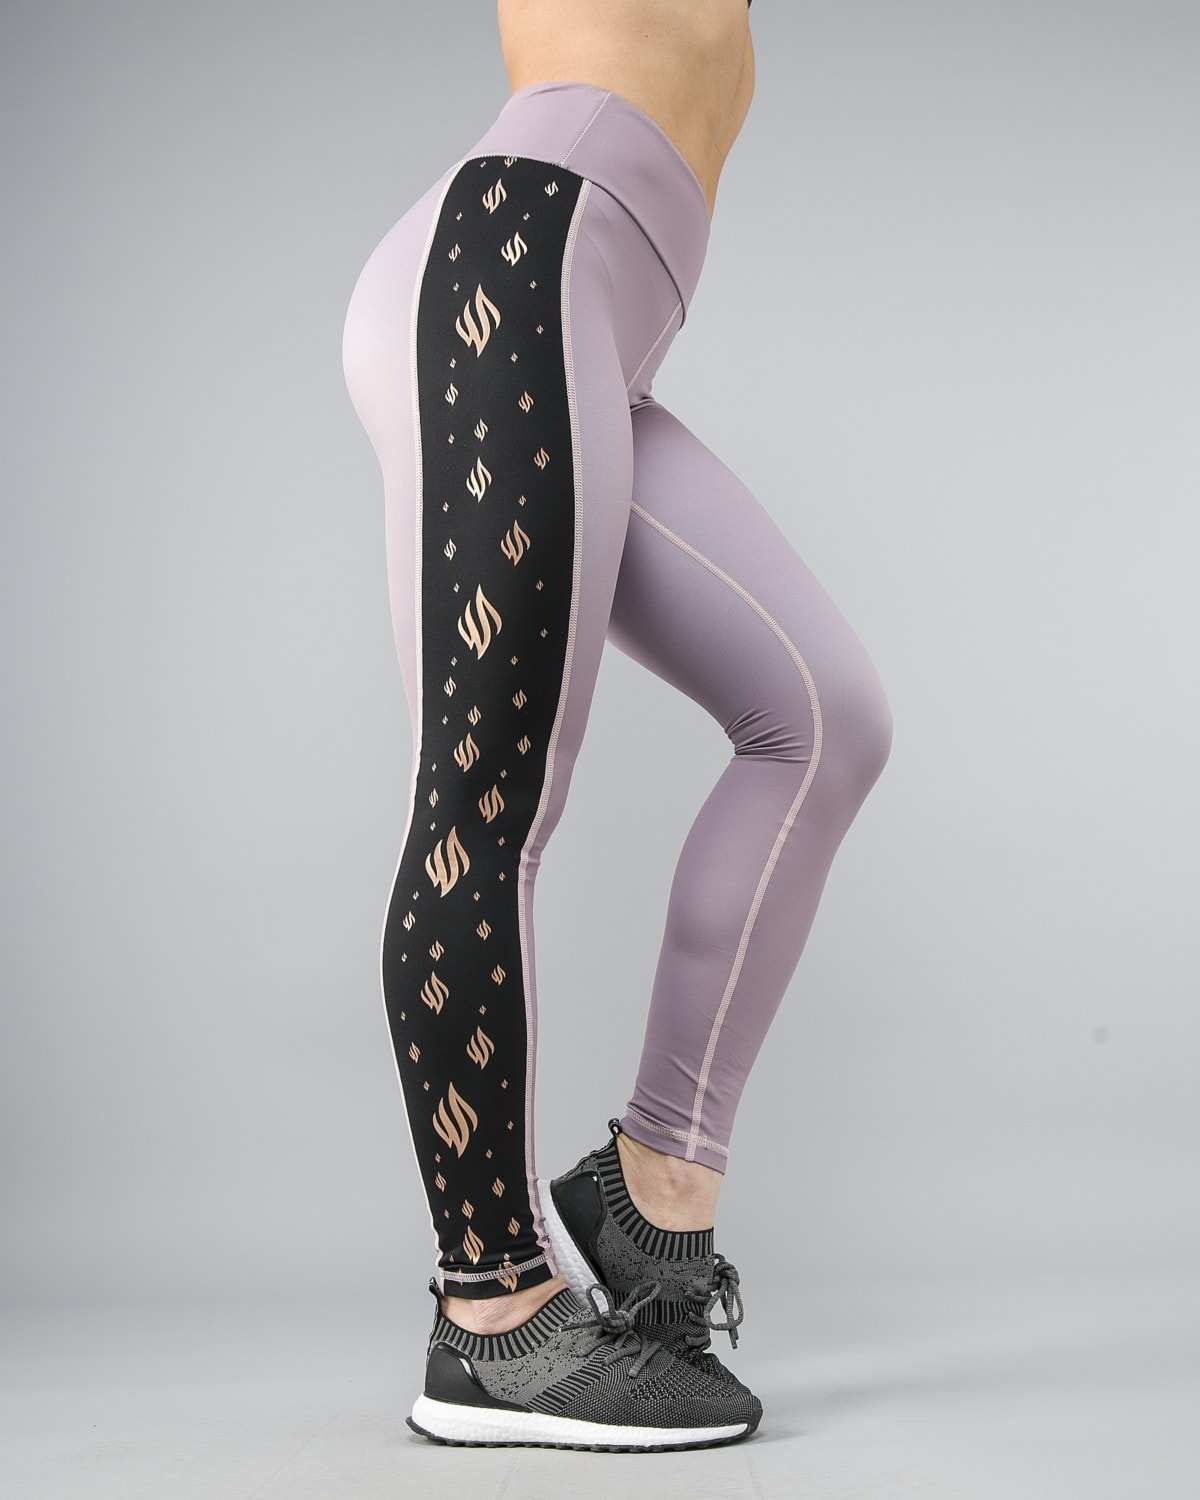 We-Are-Fit-Empower-Rose-Tights9